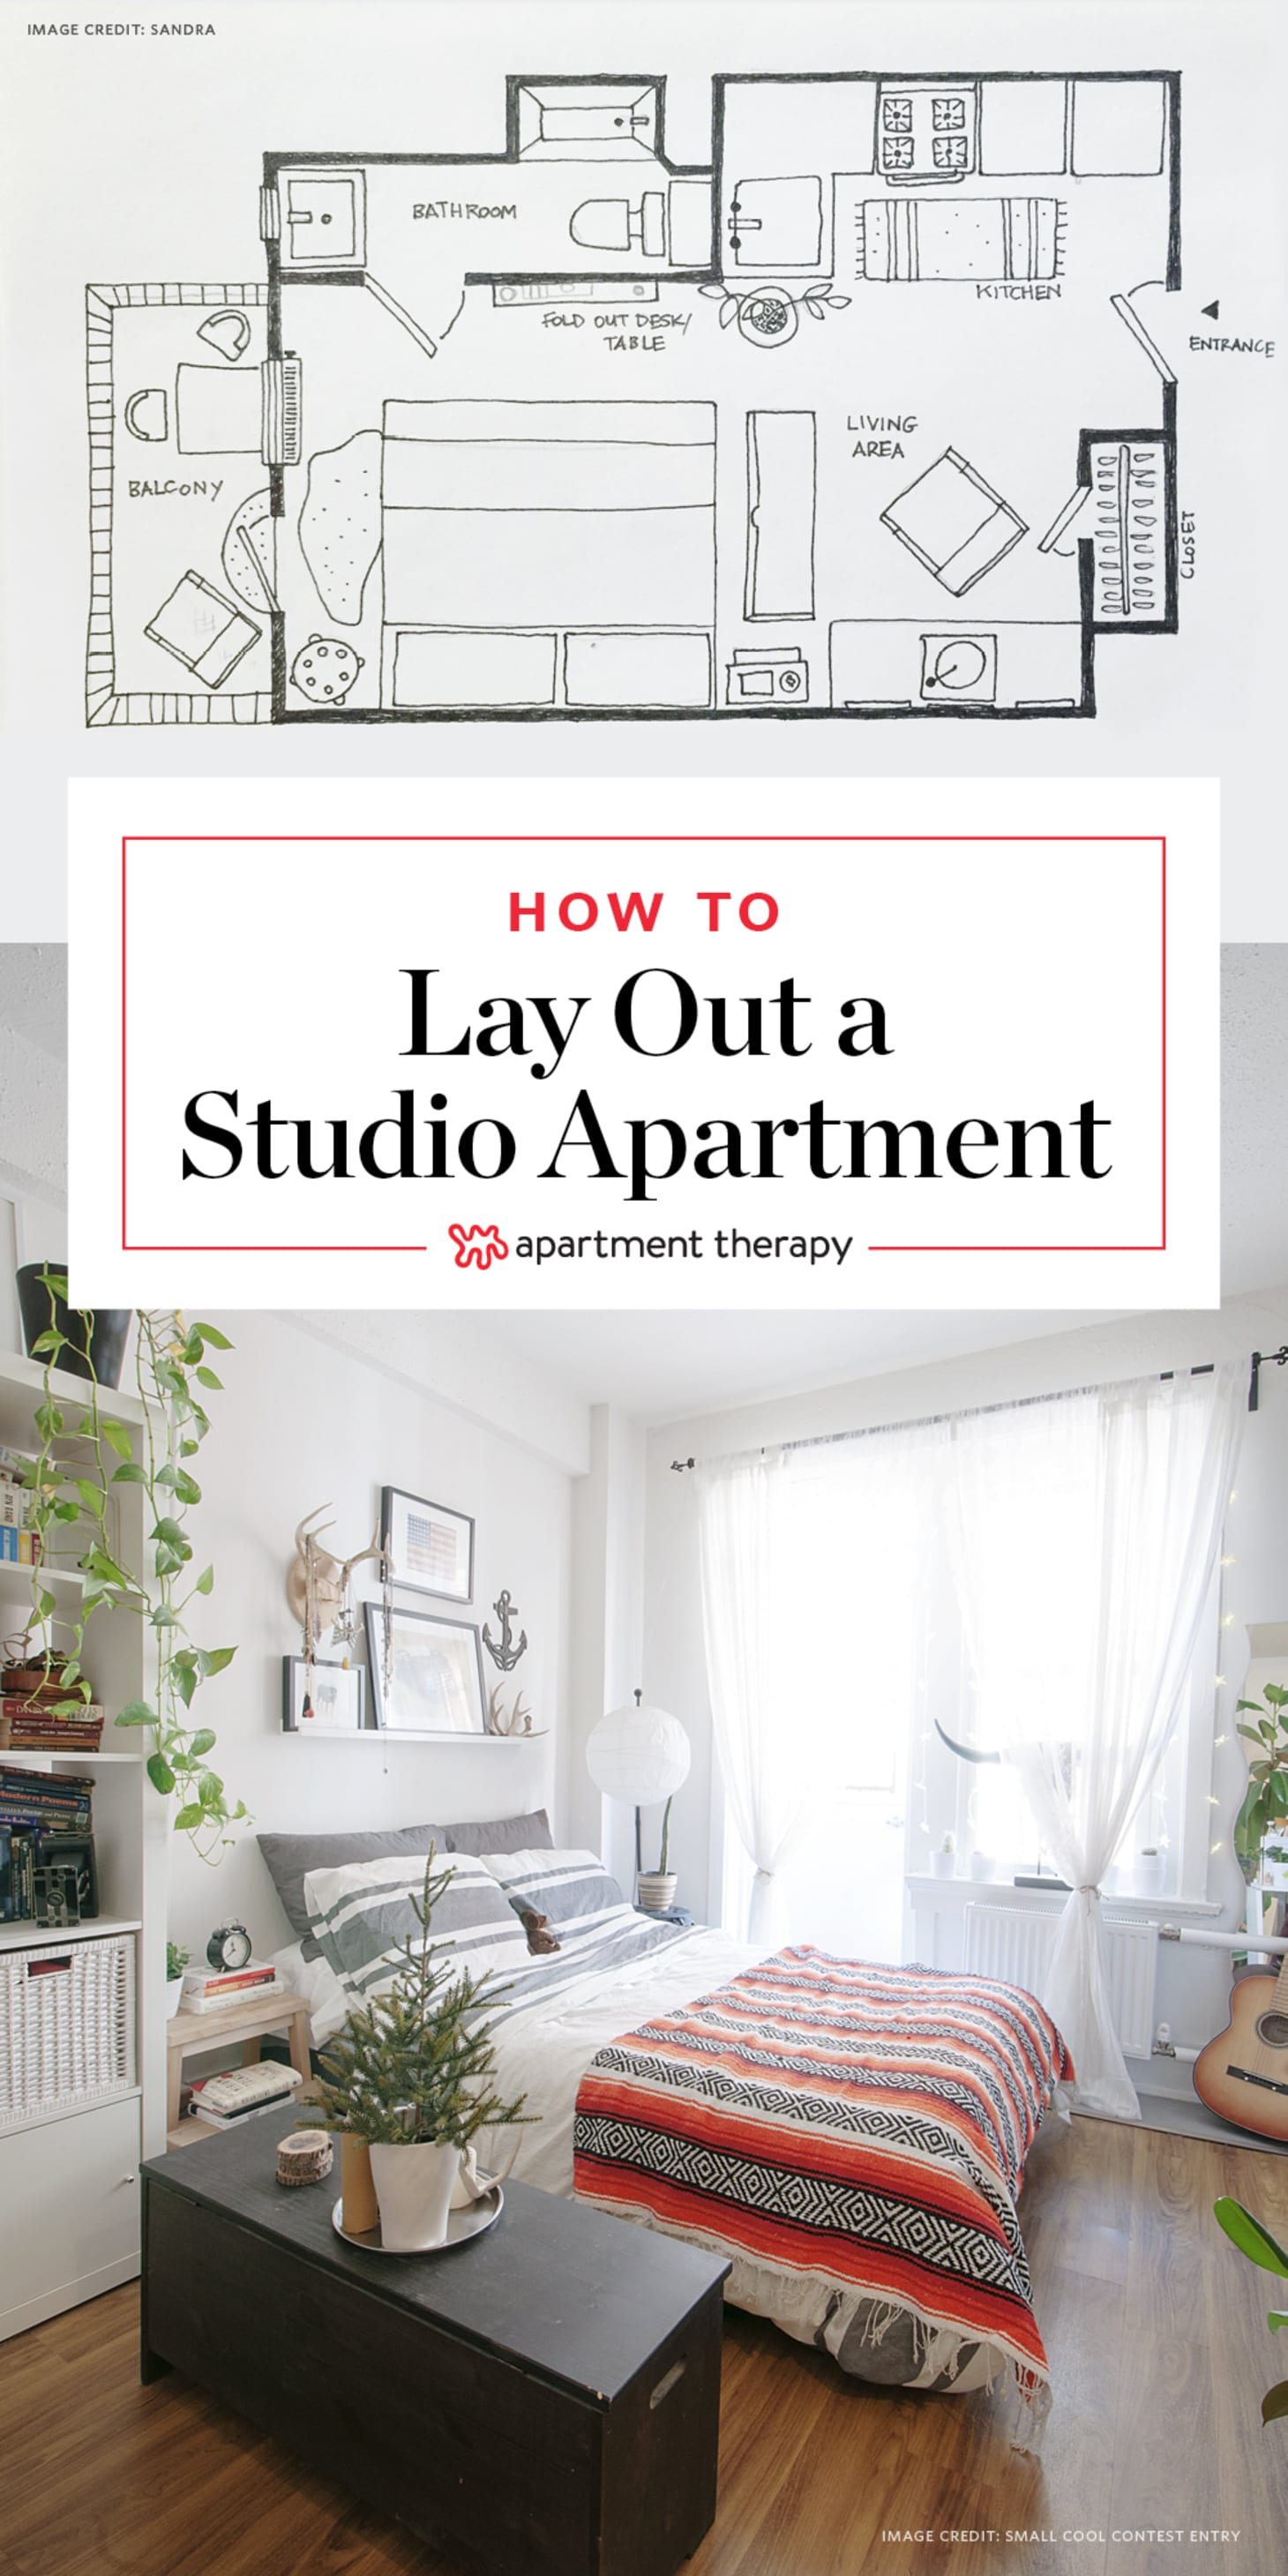 5 Ways to Lay Out a Studio Apartment | Apartment Therapy